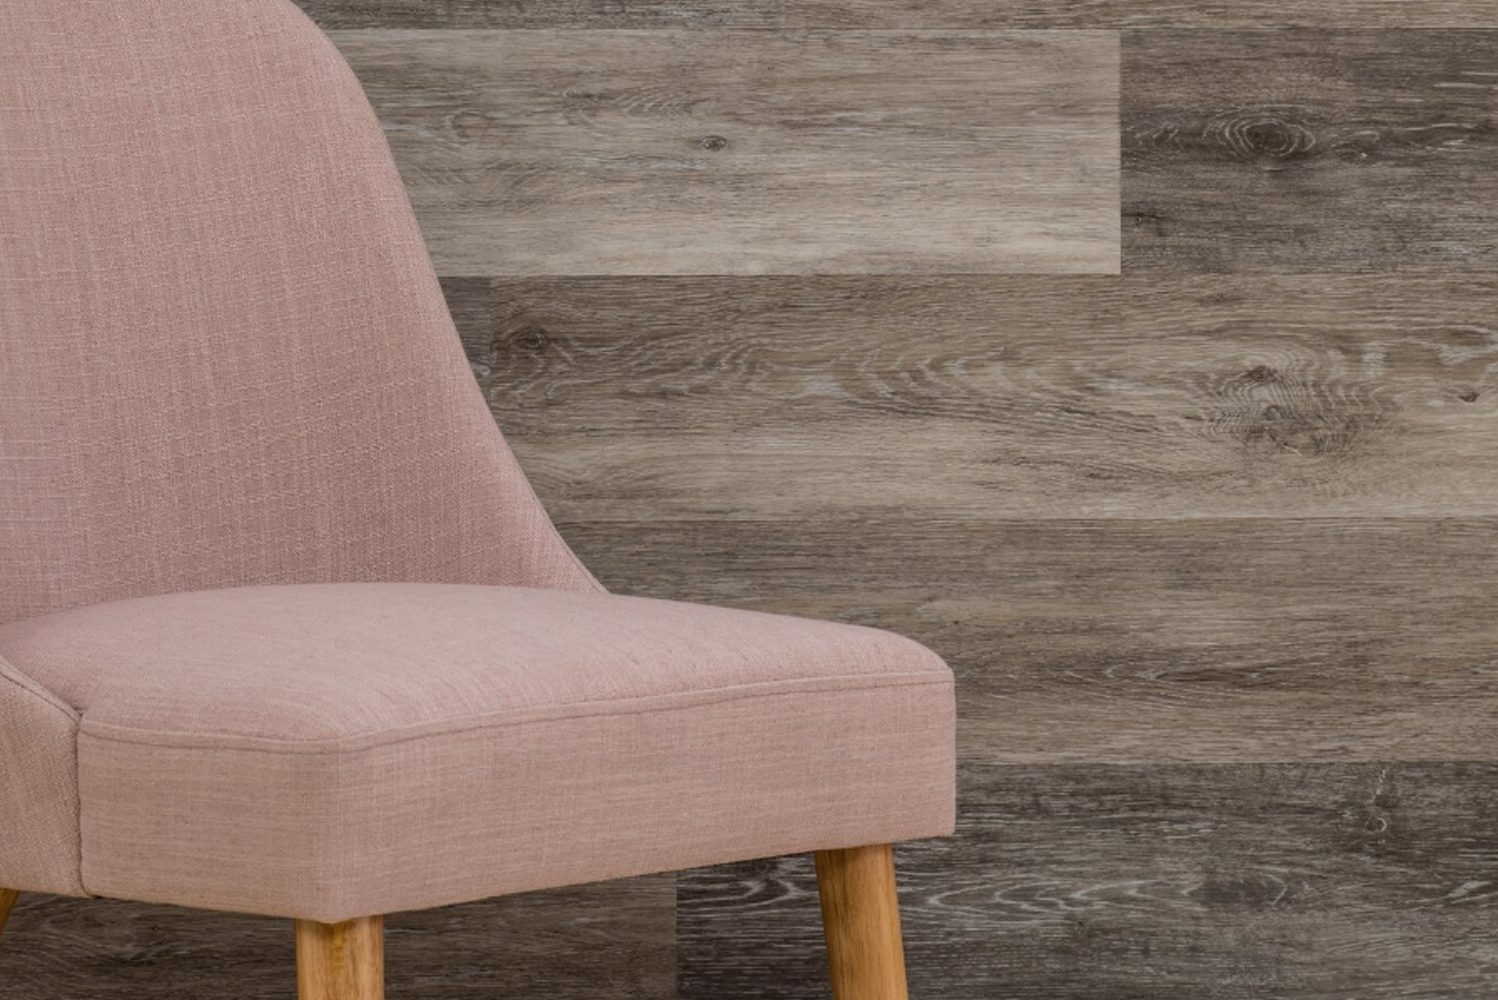 The 24 plank designs are Class A fire rated for use on walls in commercial interiors and FloorScore certified.